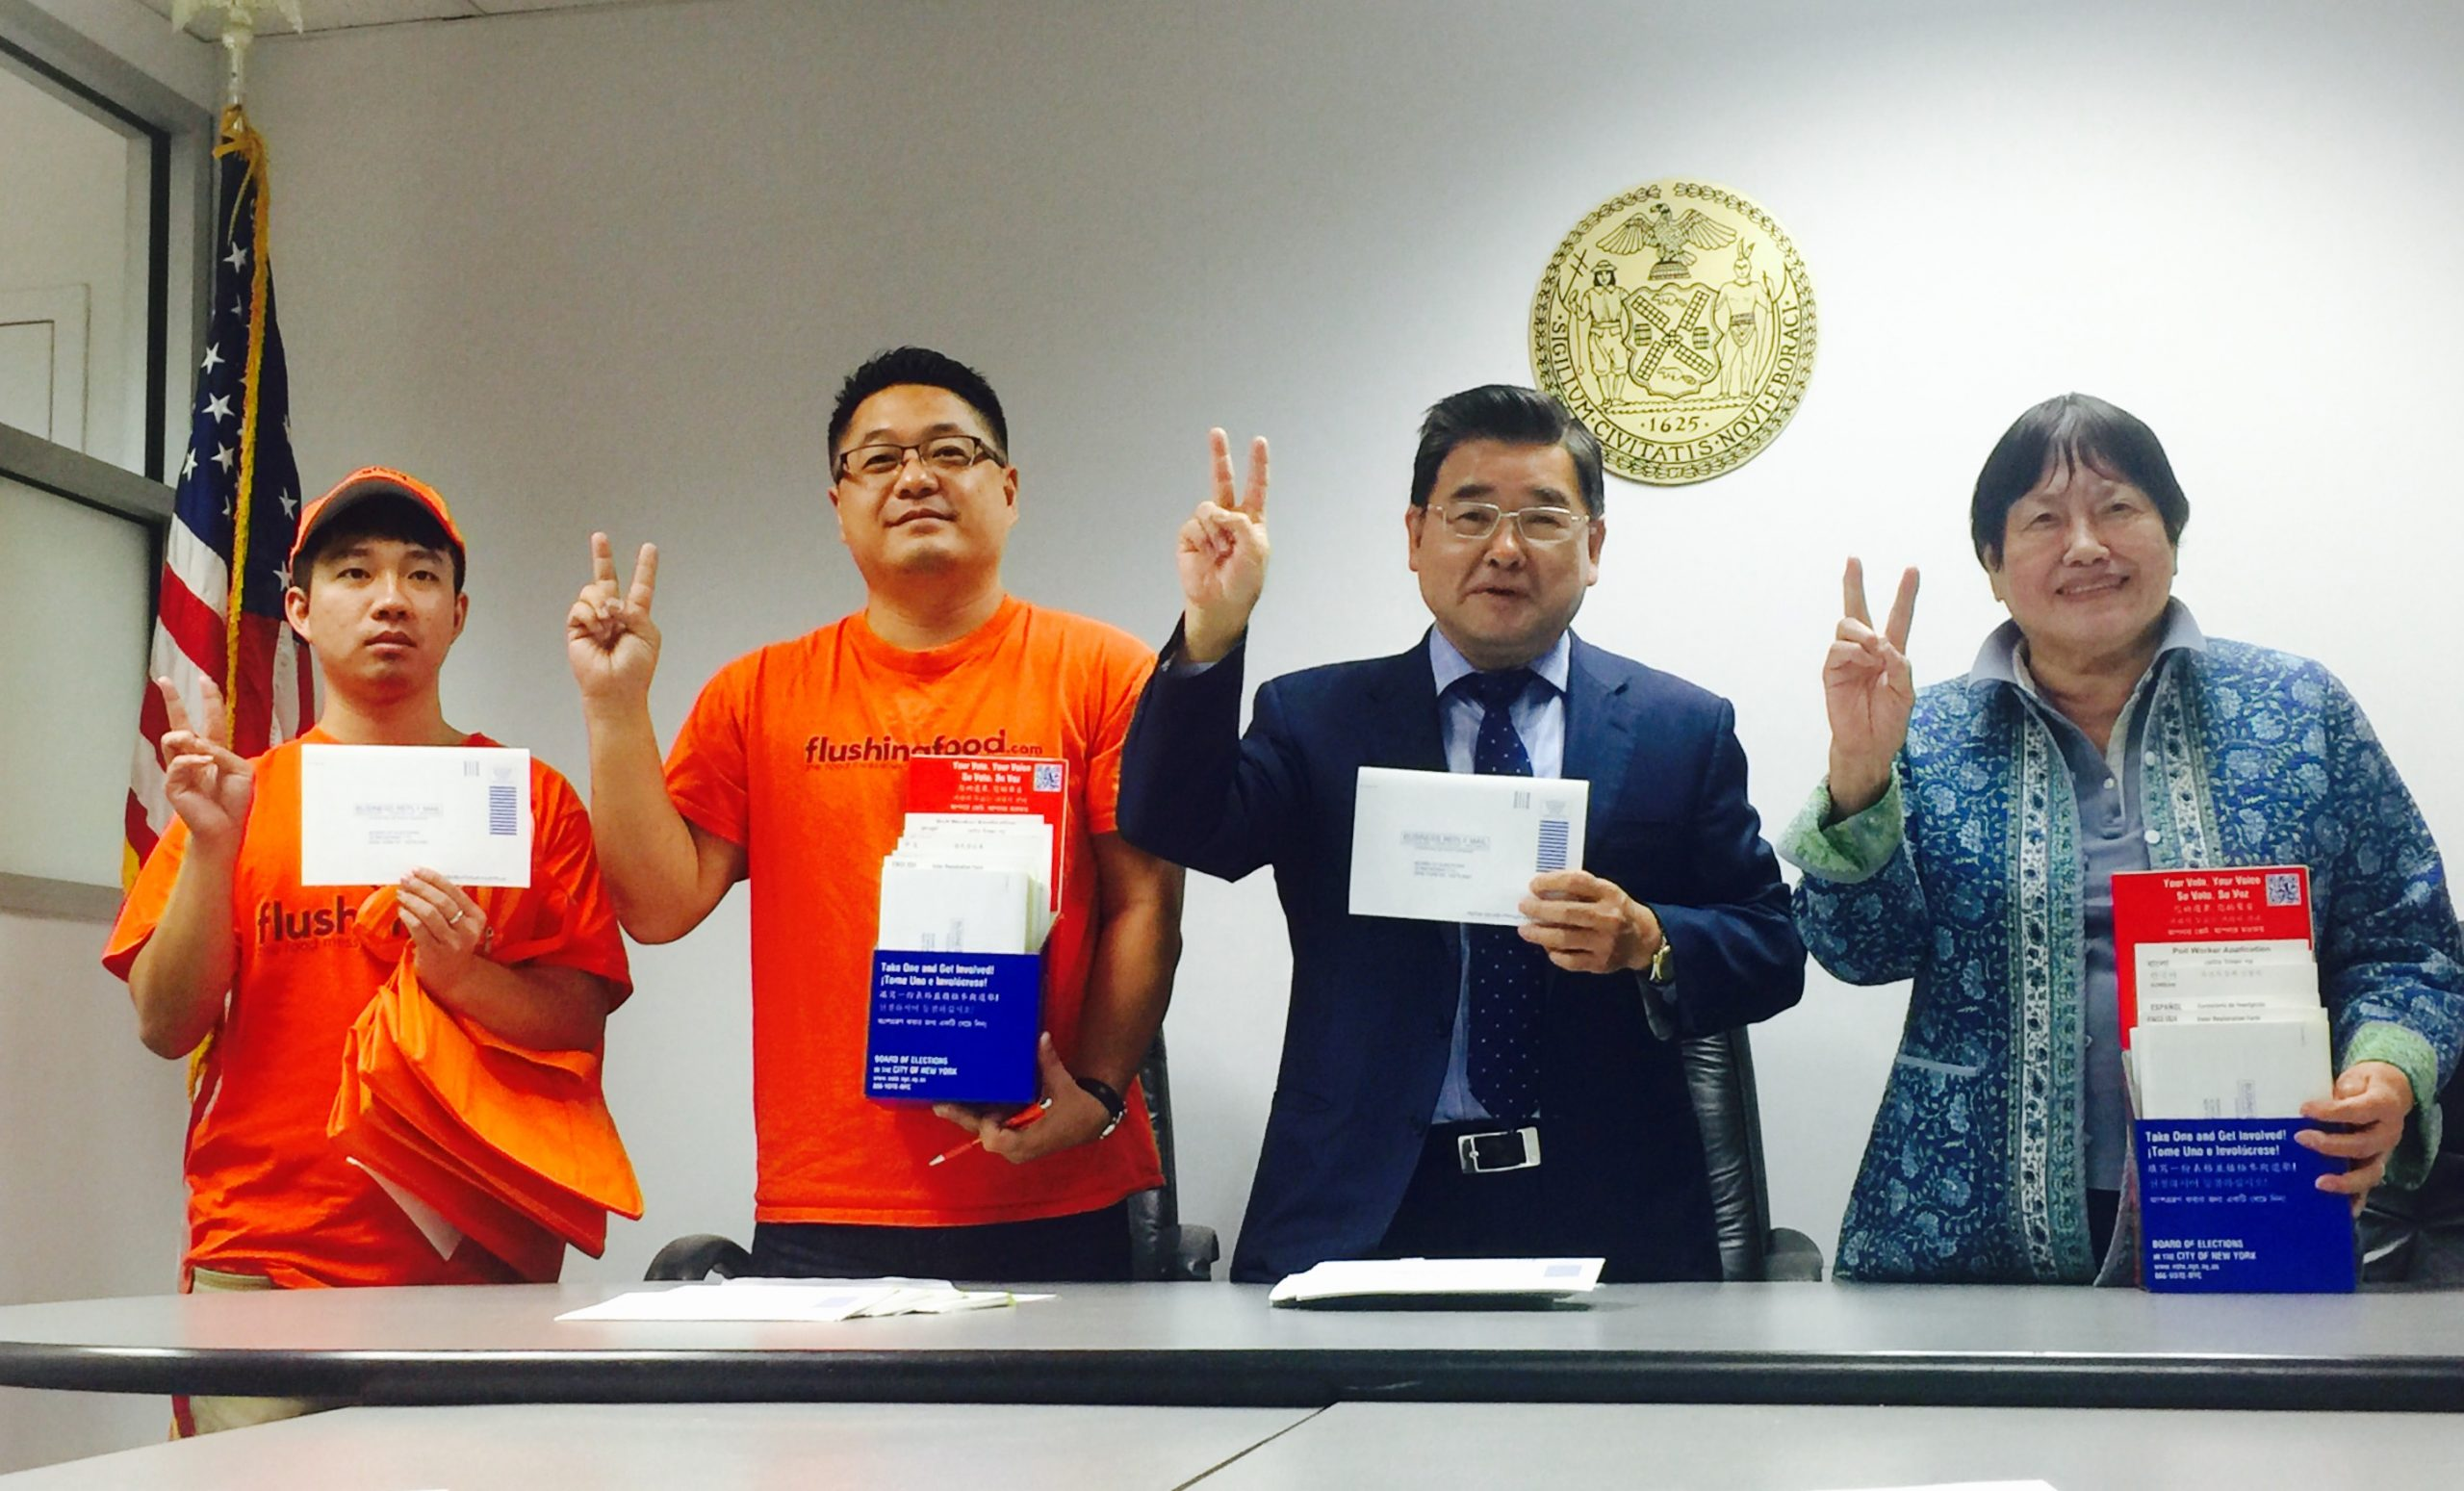 NYC Councilman Koo with Food Delivery company, Kick off Voter Registration Drive